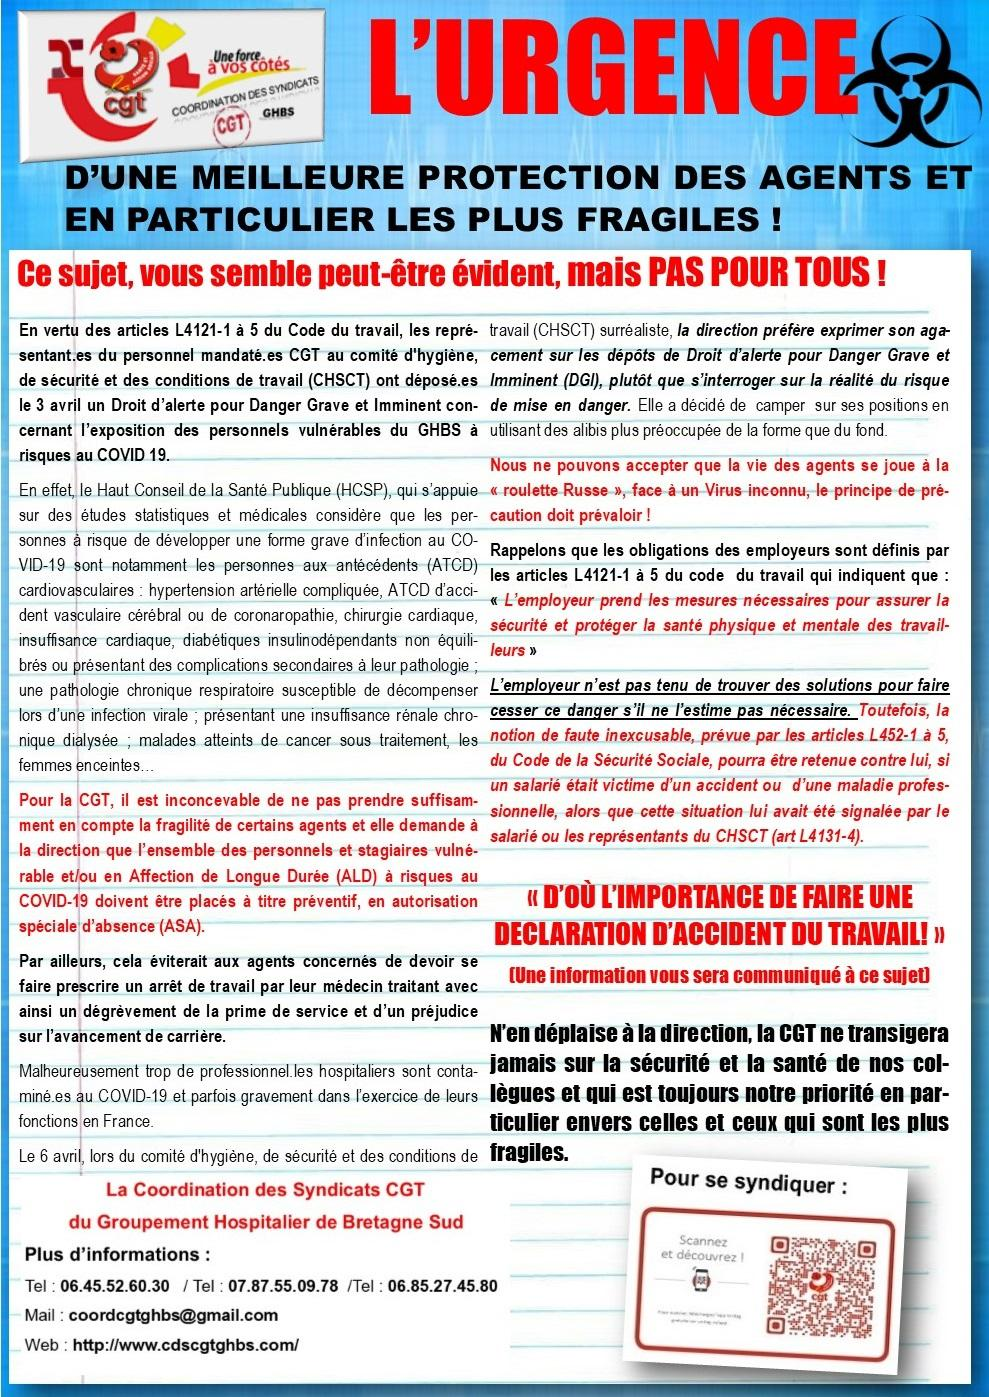 08042020 tract urgence protec agents cds cgt ghbs